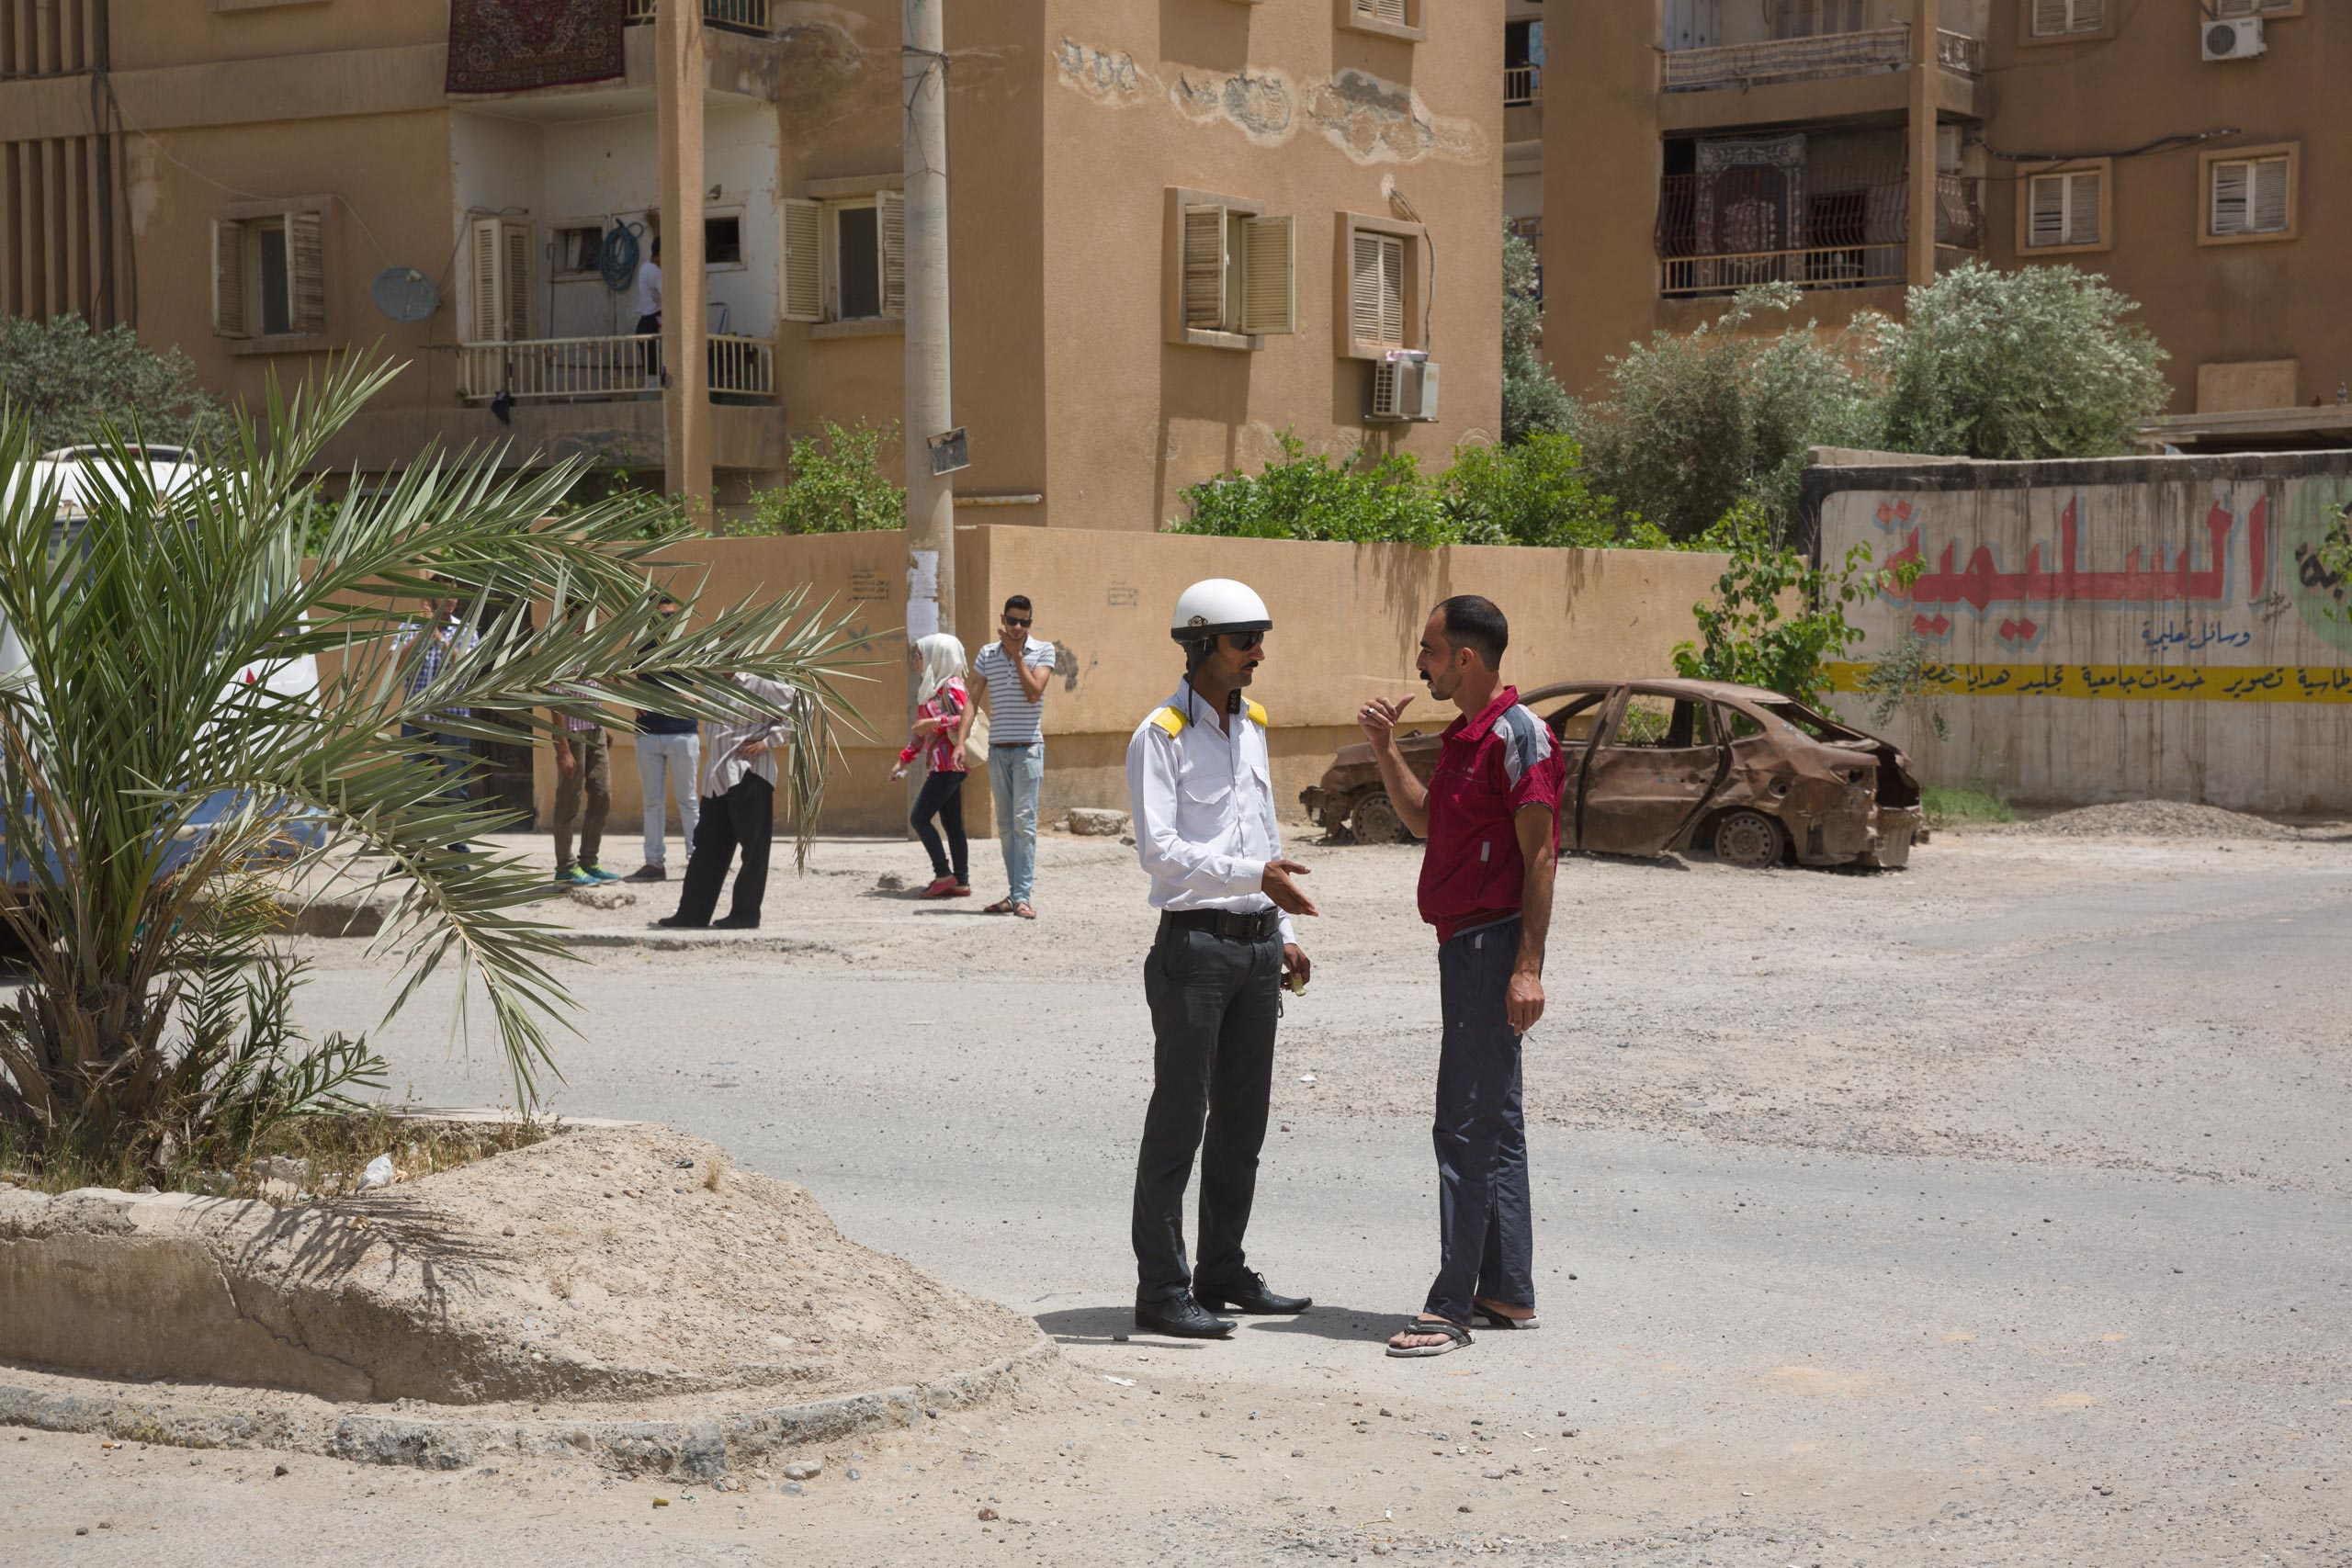 Traffic cops in black trousers, pressed white shirts and white helmets direct traffic on the mostly empty roads of Deir-ez Zor. Because of the ISIS blockade of the city, however, electricity and water have been cut off, and there is no fuel for cars, May 25, 2015.